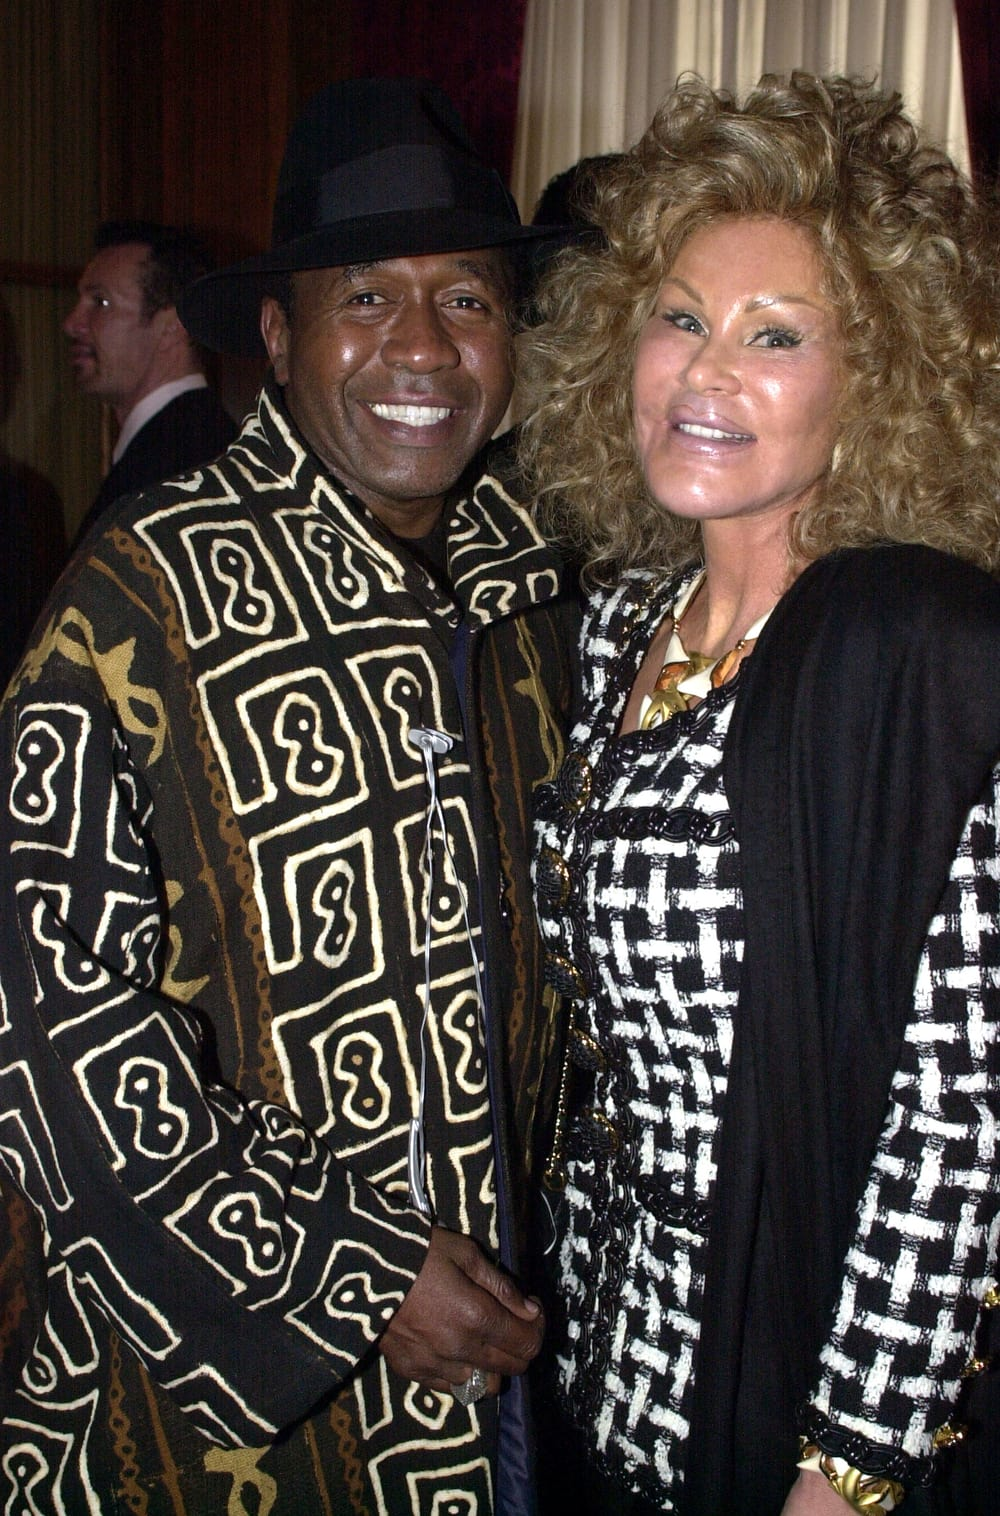 Actor Ben Vereen and Jocelyne Wildenstein arrive for the Helen Yarmak fashion show May 20, 2002 at the Russian Embassy in New York City. (Photo by Keith D. Bedford/Getty Images)